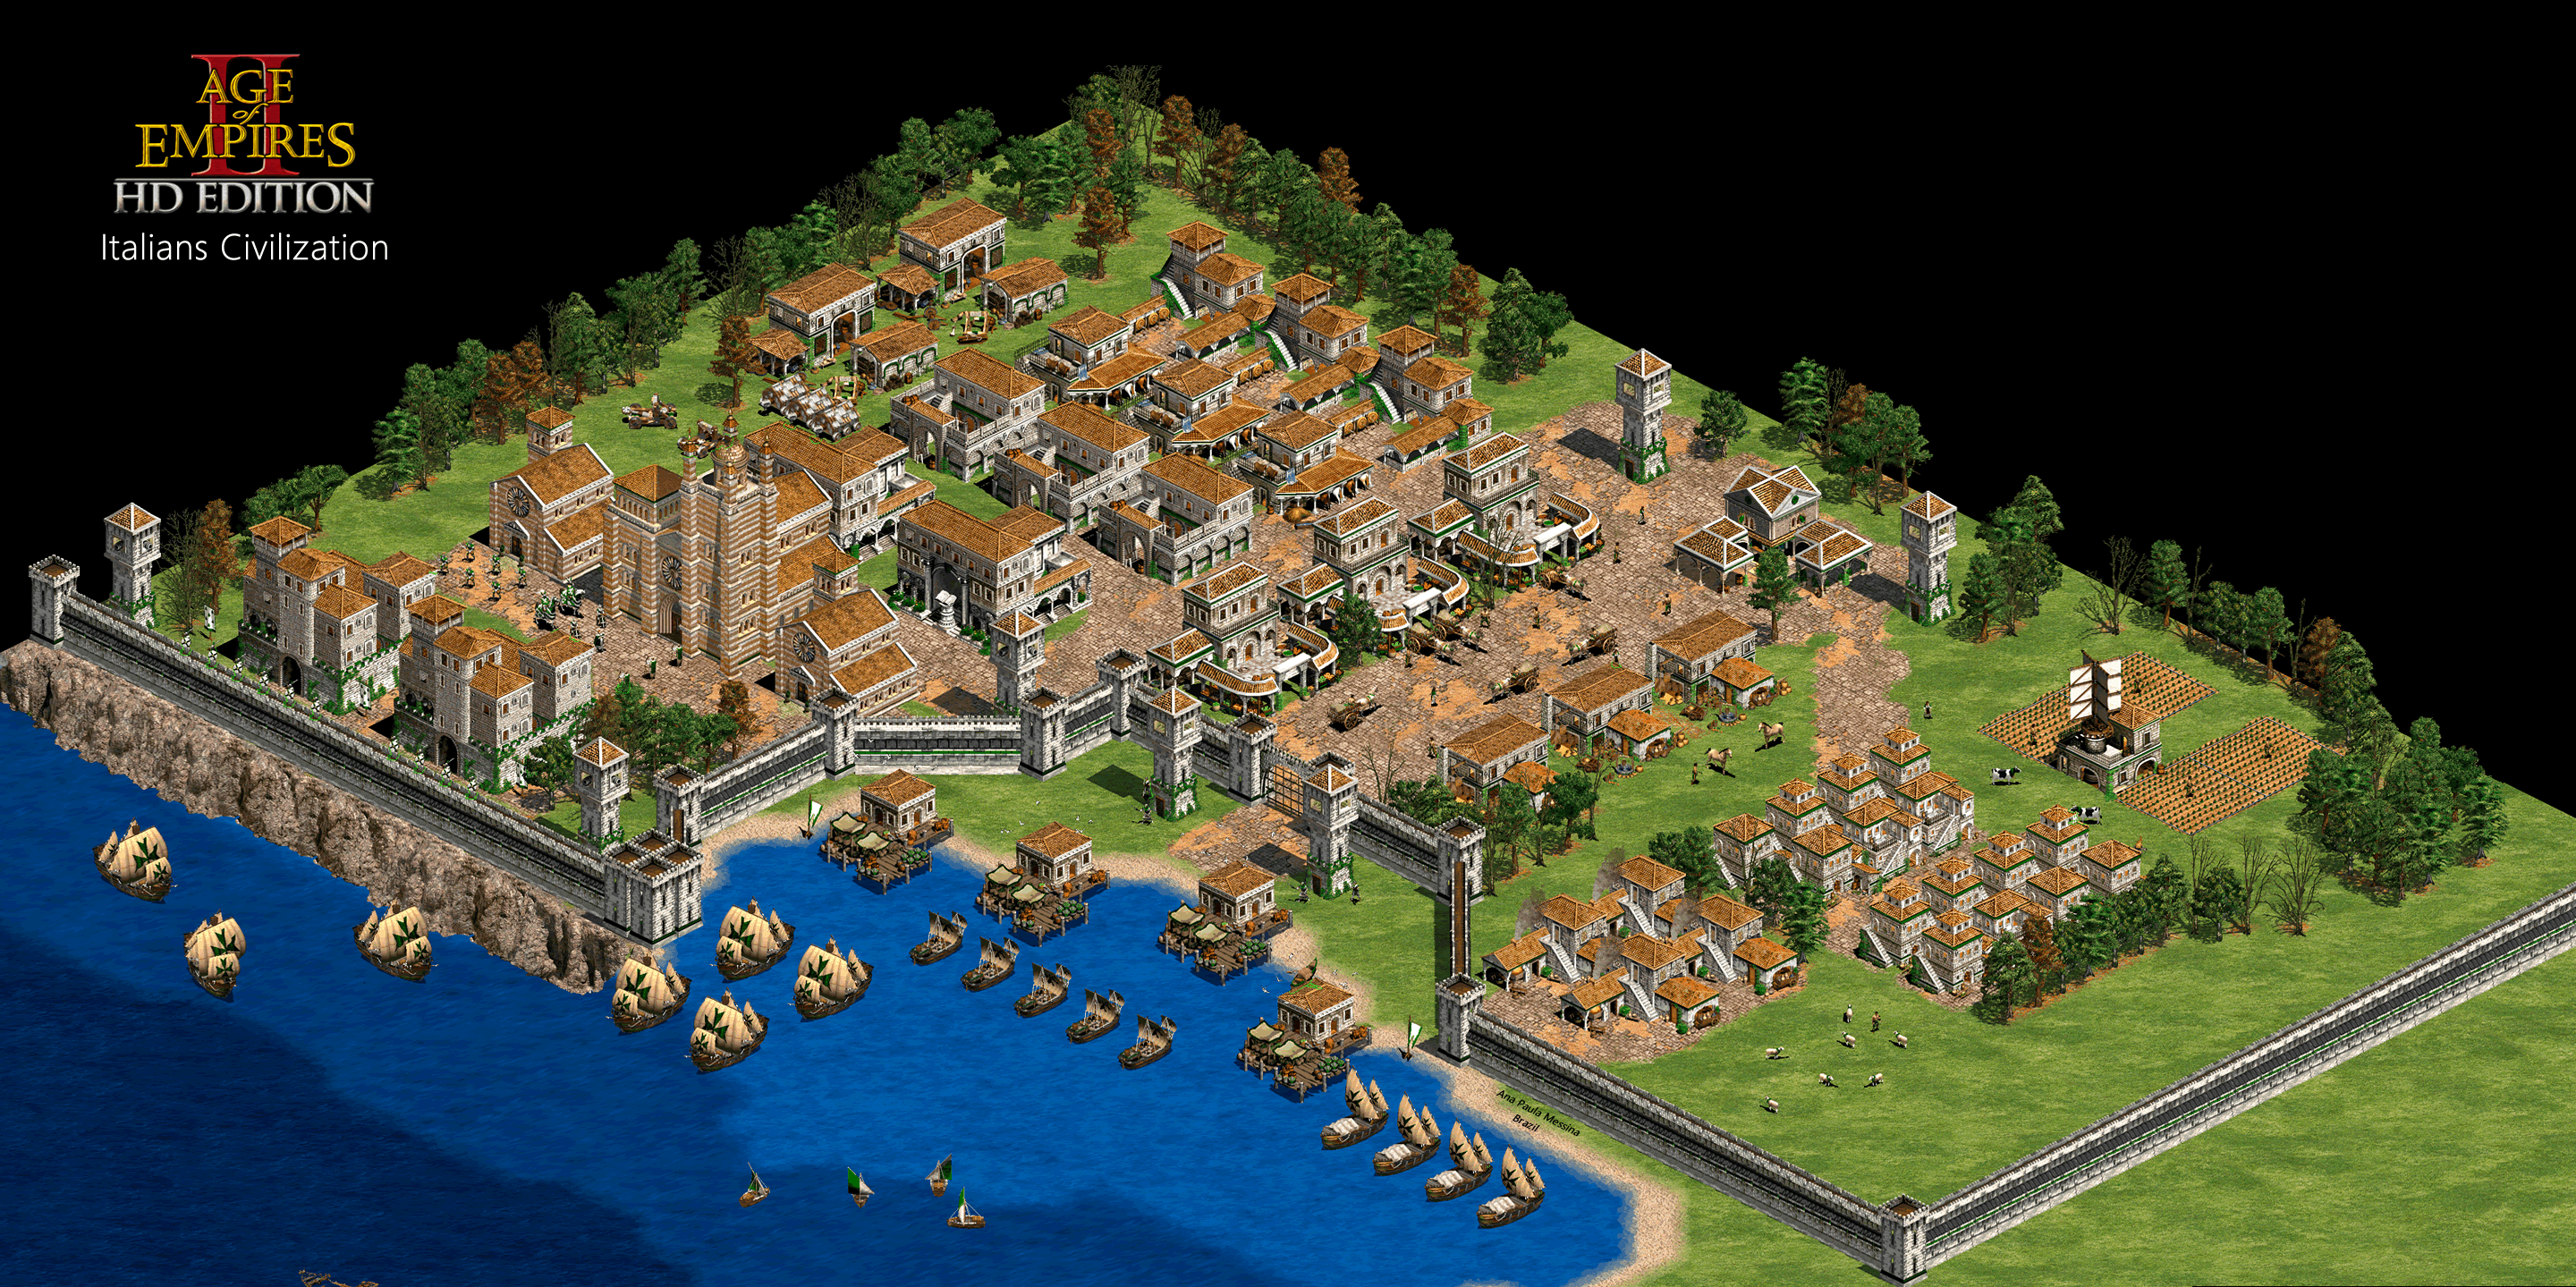 Anamessina S Aoe Ii Wallpapers Age Of Empires